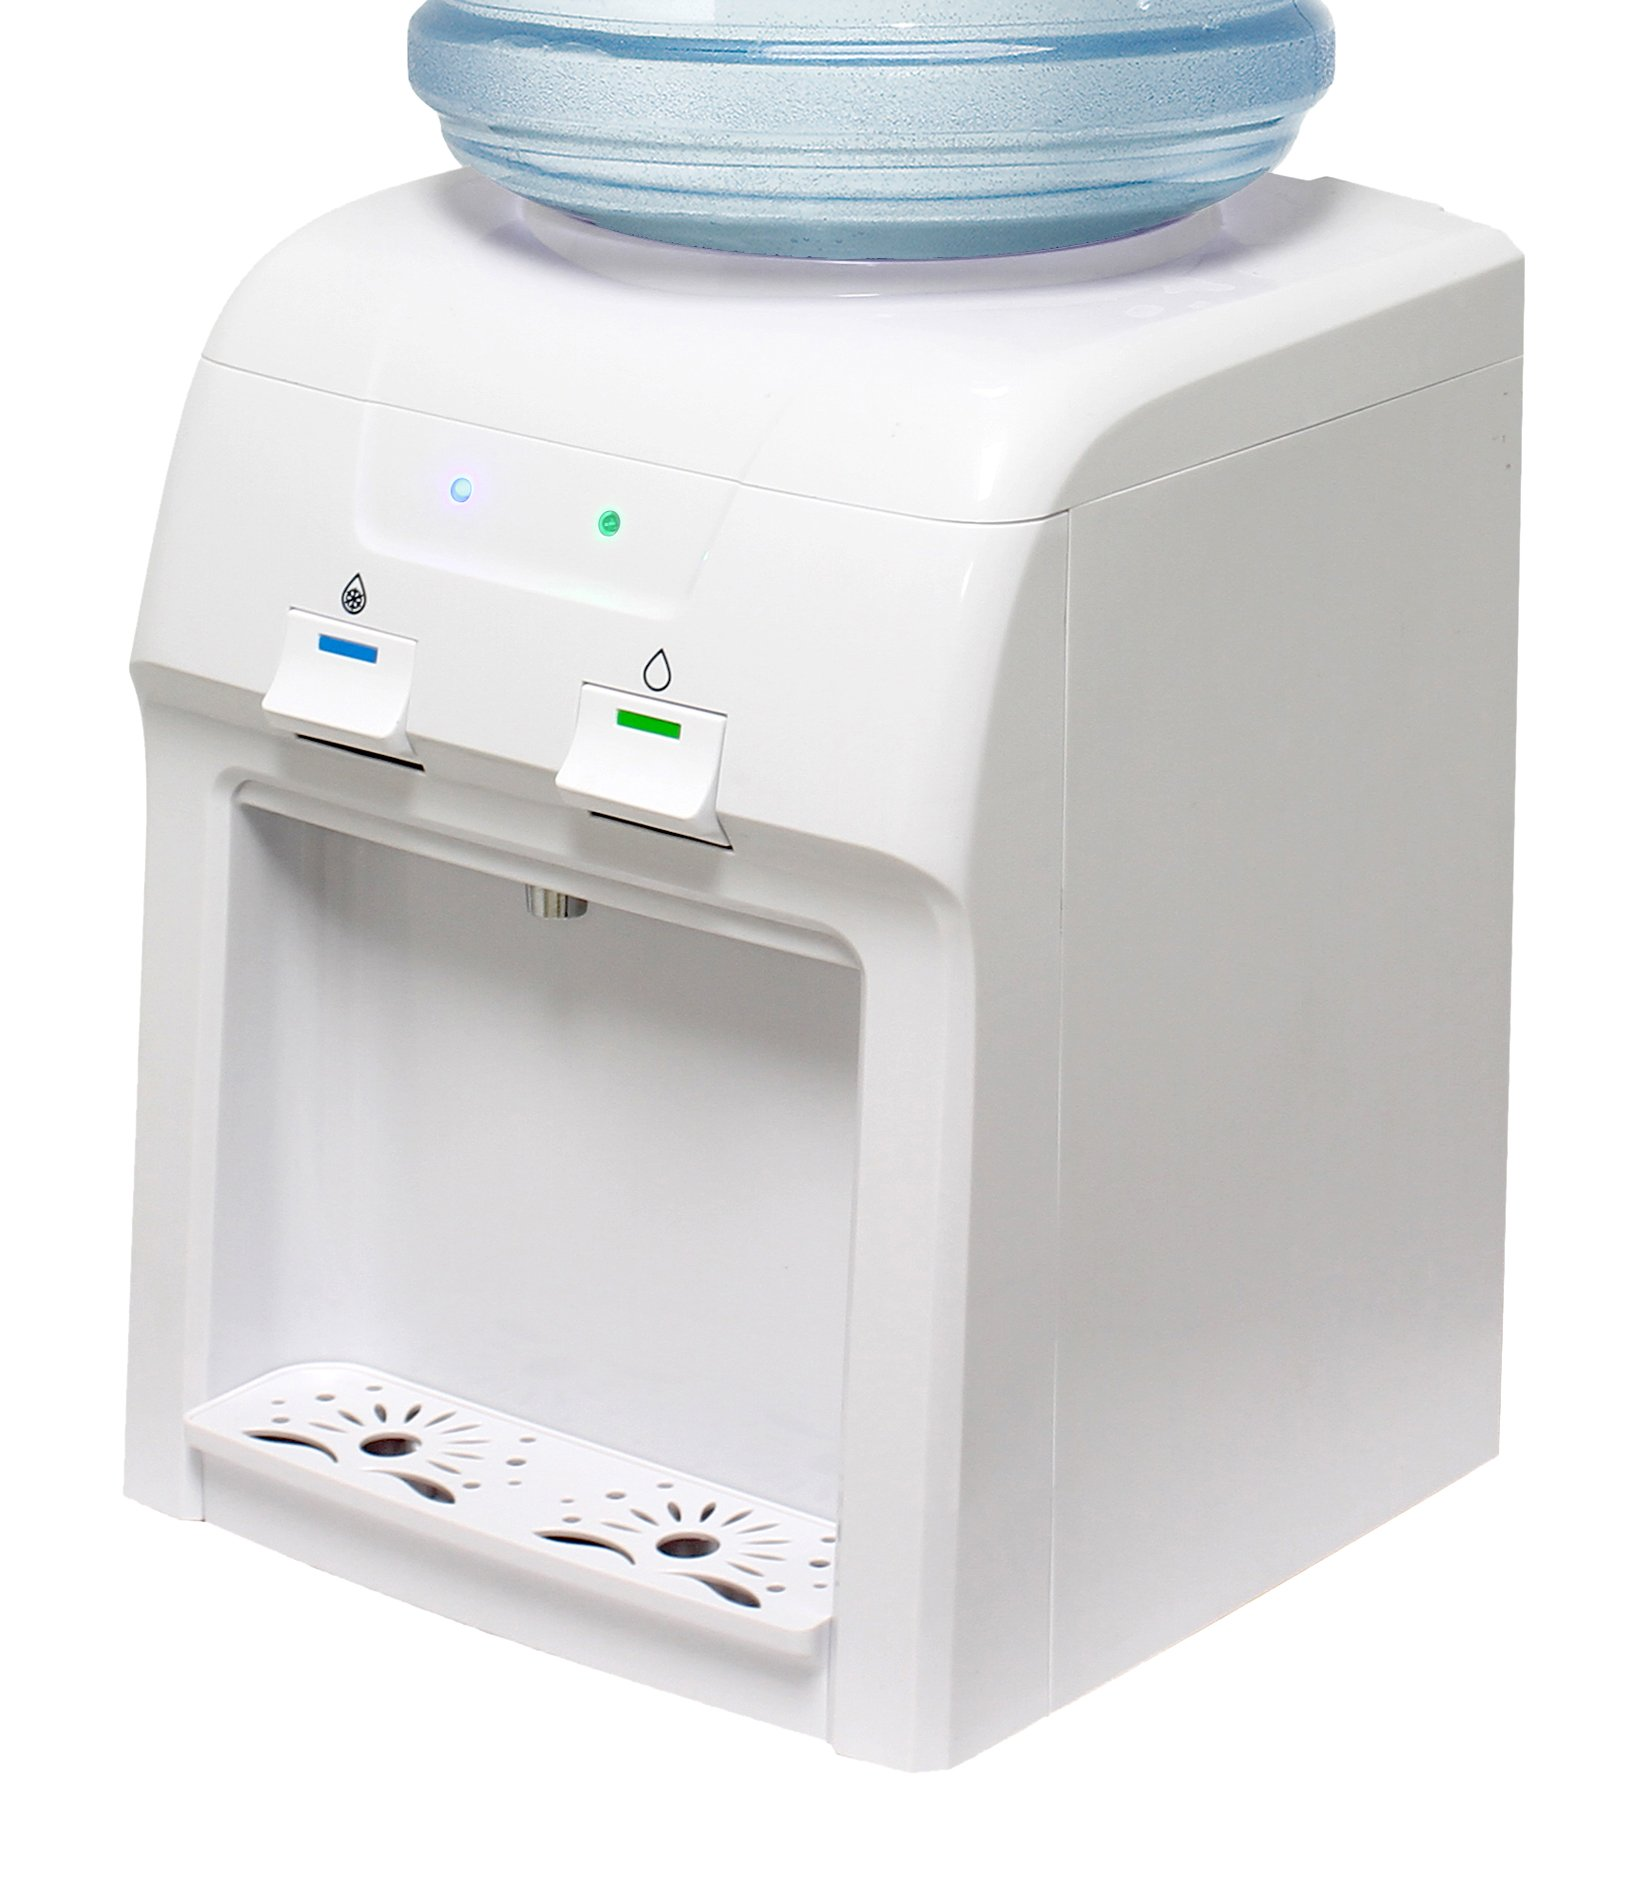 Vitapur Countertop Room Cold Water Dispenser, White by Vitapur